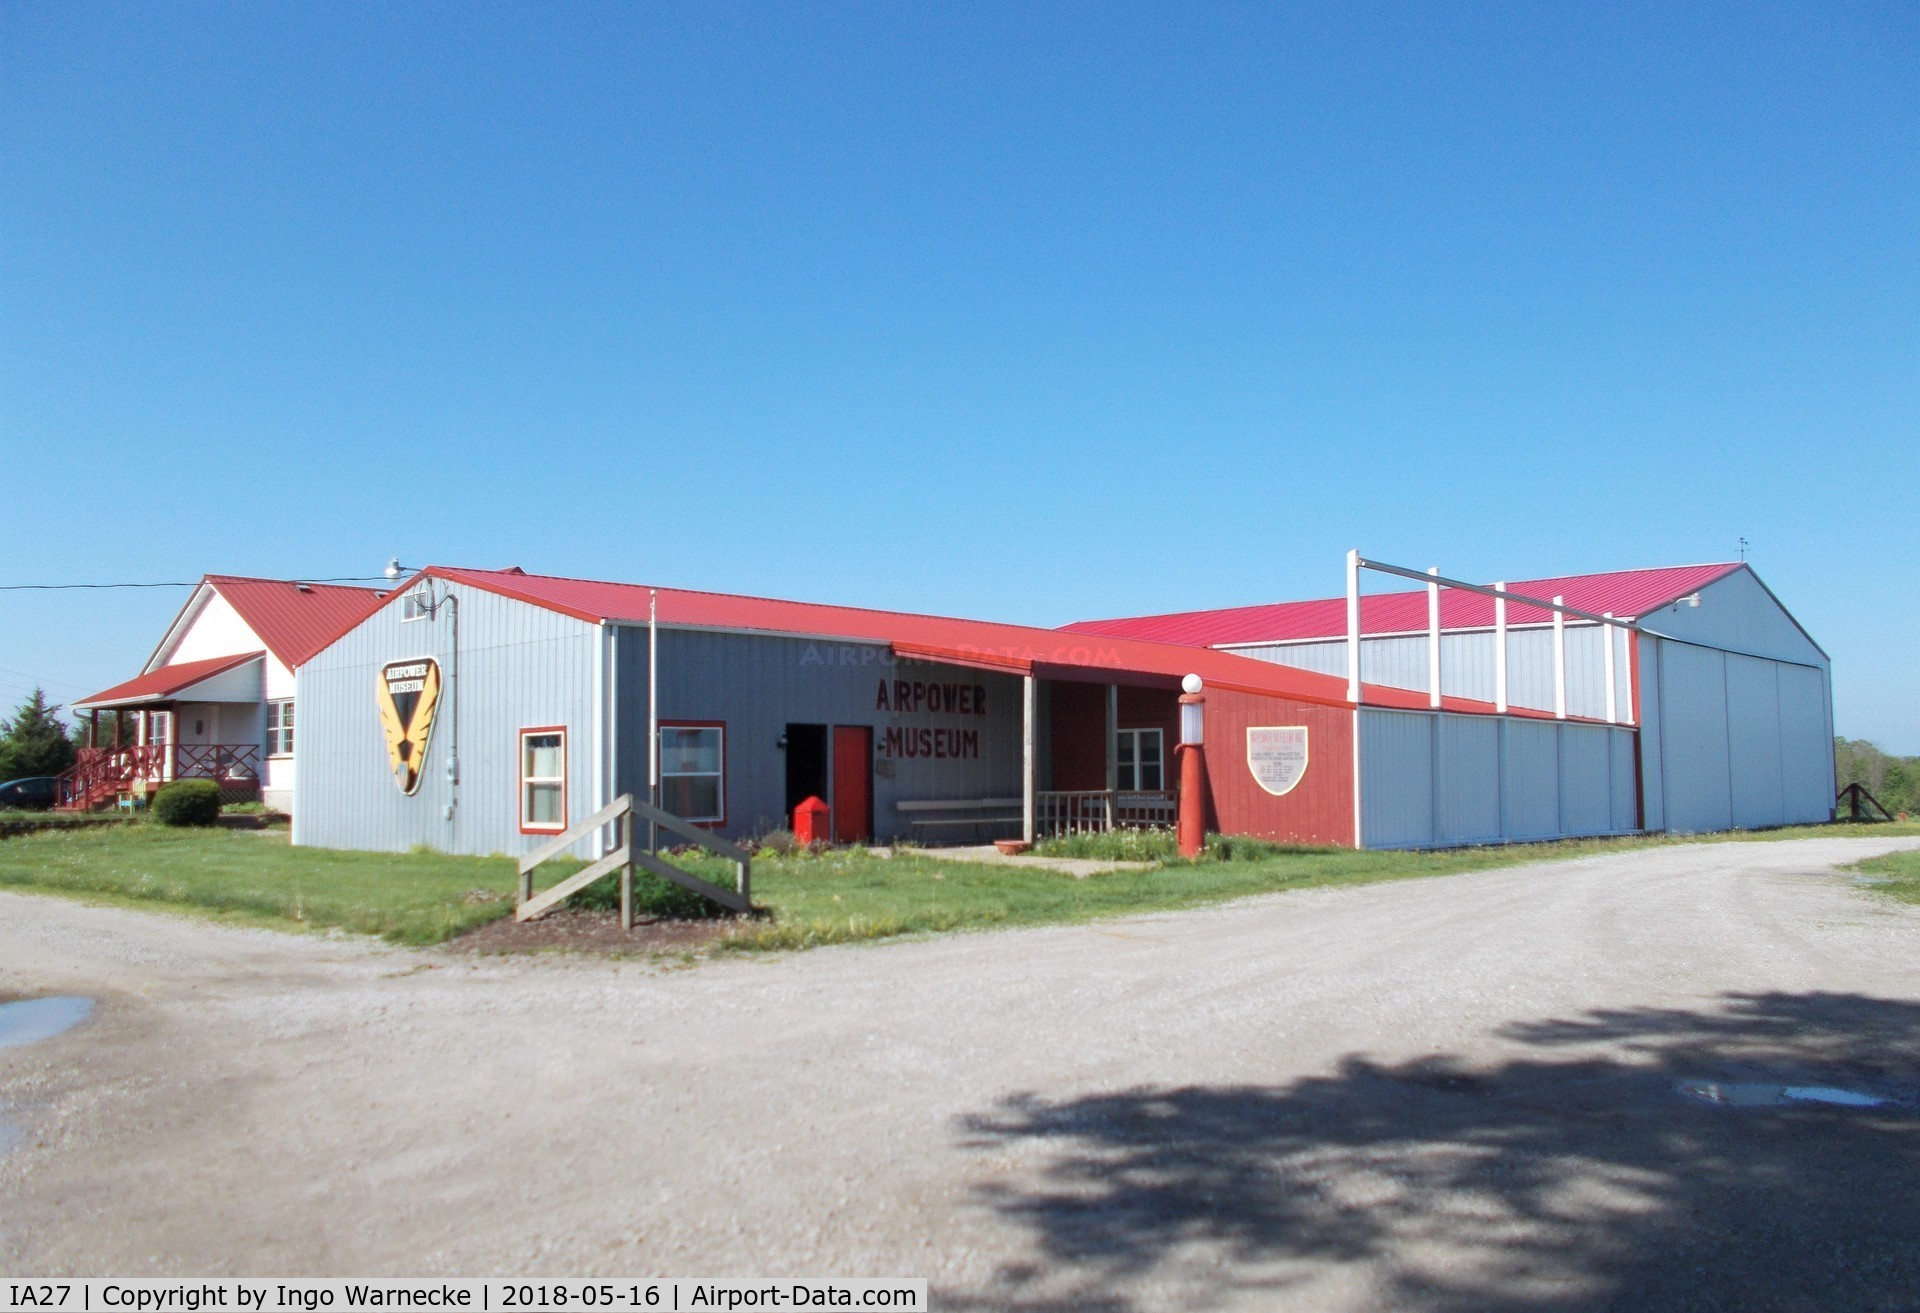 Antique Airfield Airport (IA27) - hangar of the Airpower Museum at Antique Airfield, Blakesburg IA